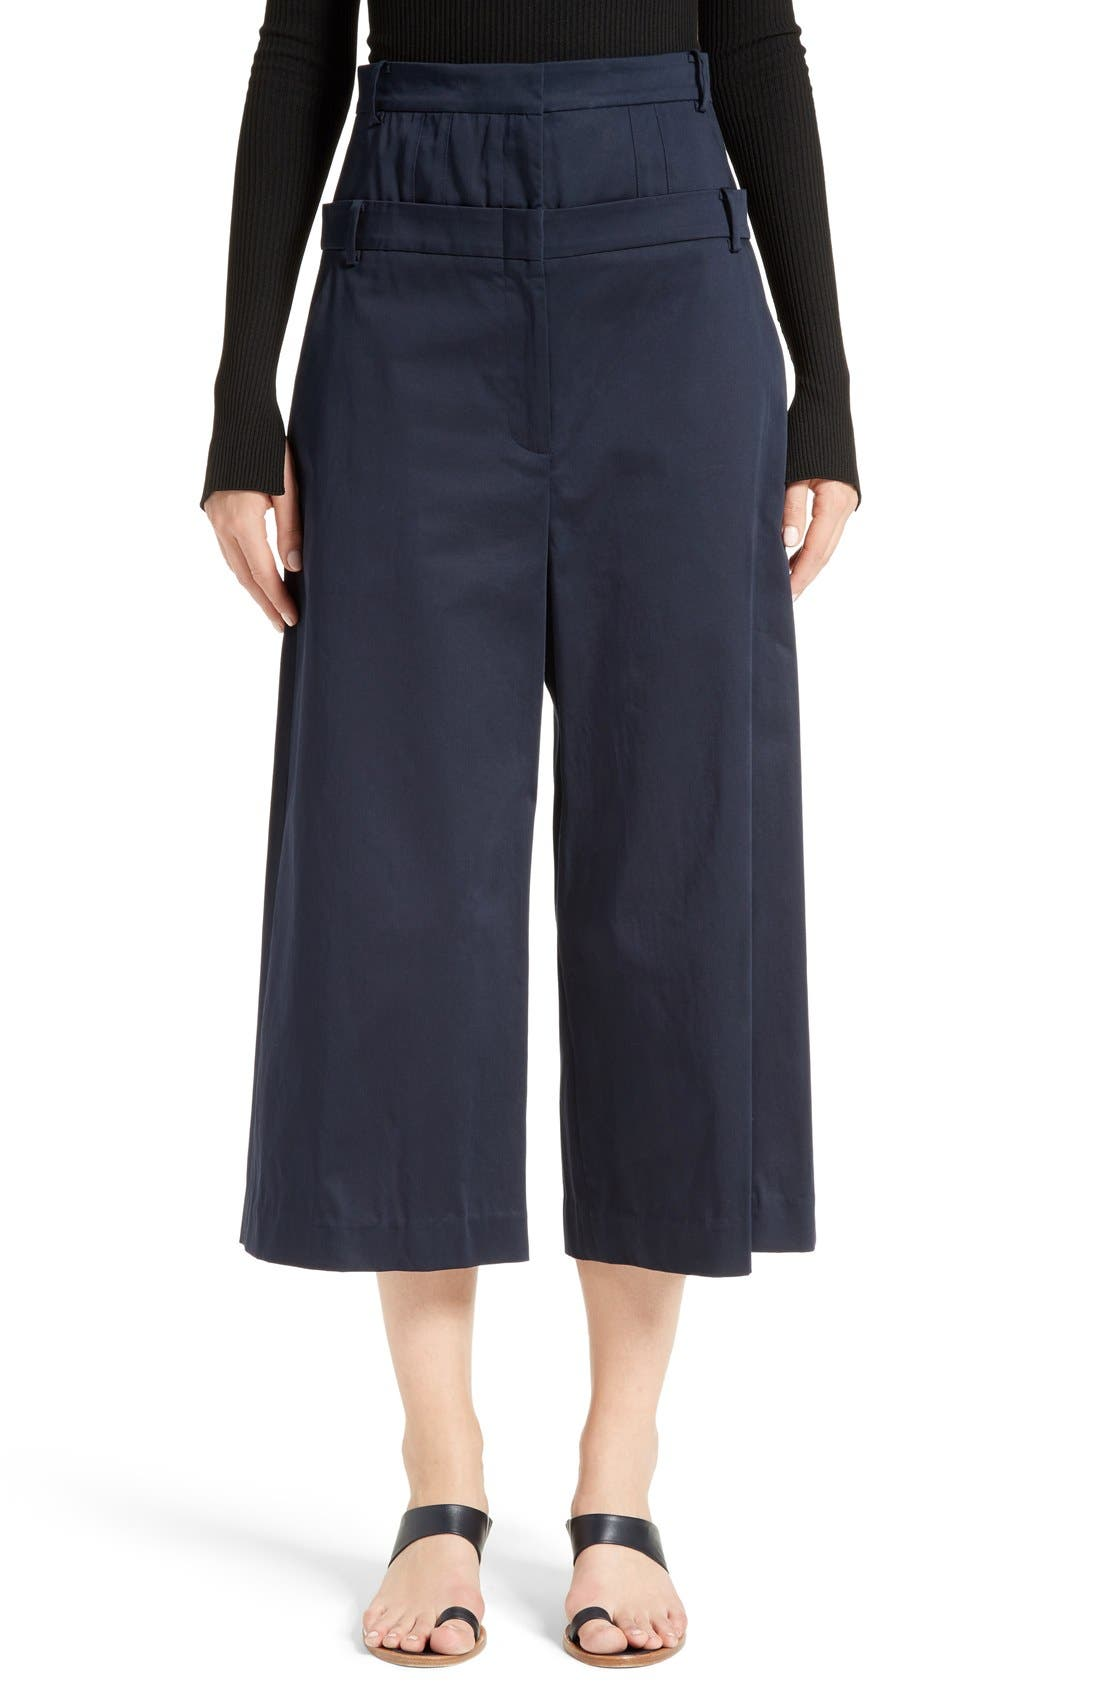 Tibi Mila Satin Double Waist Crop Pants